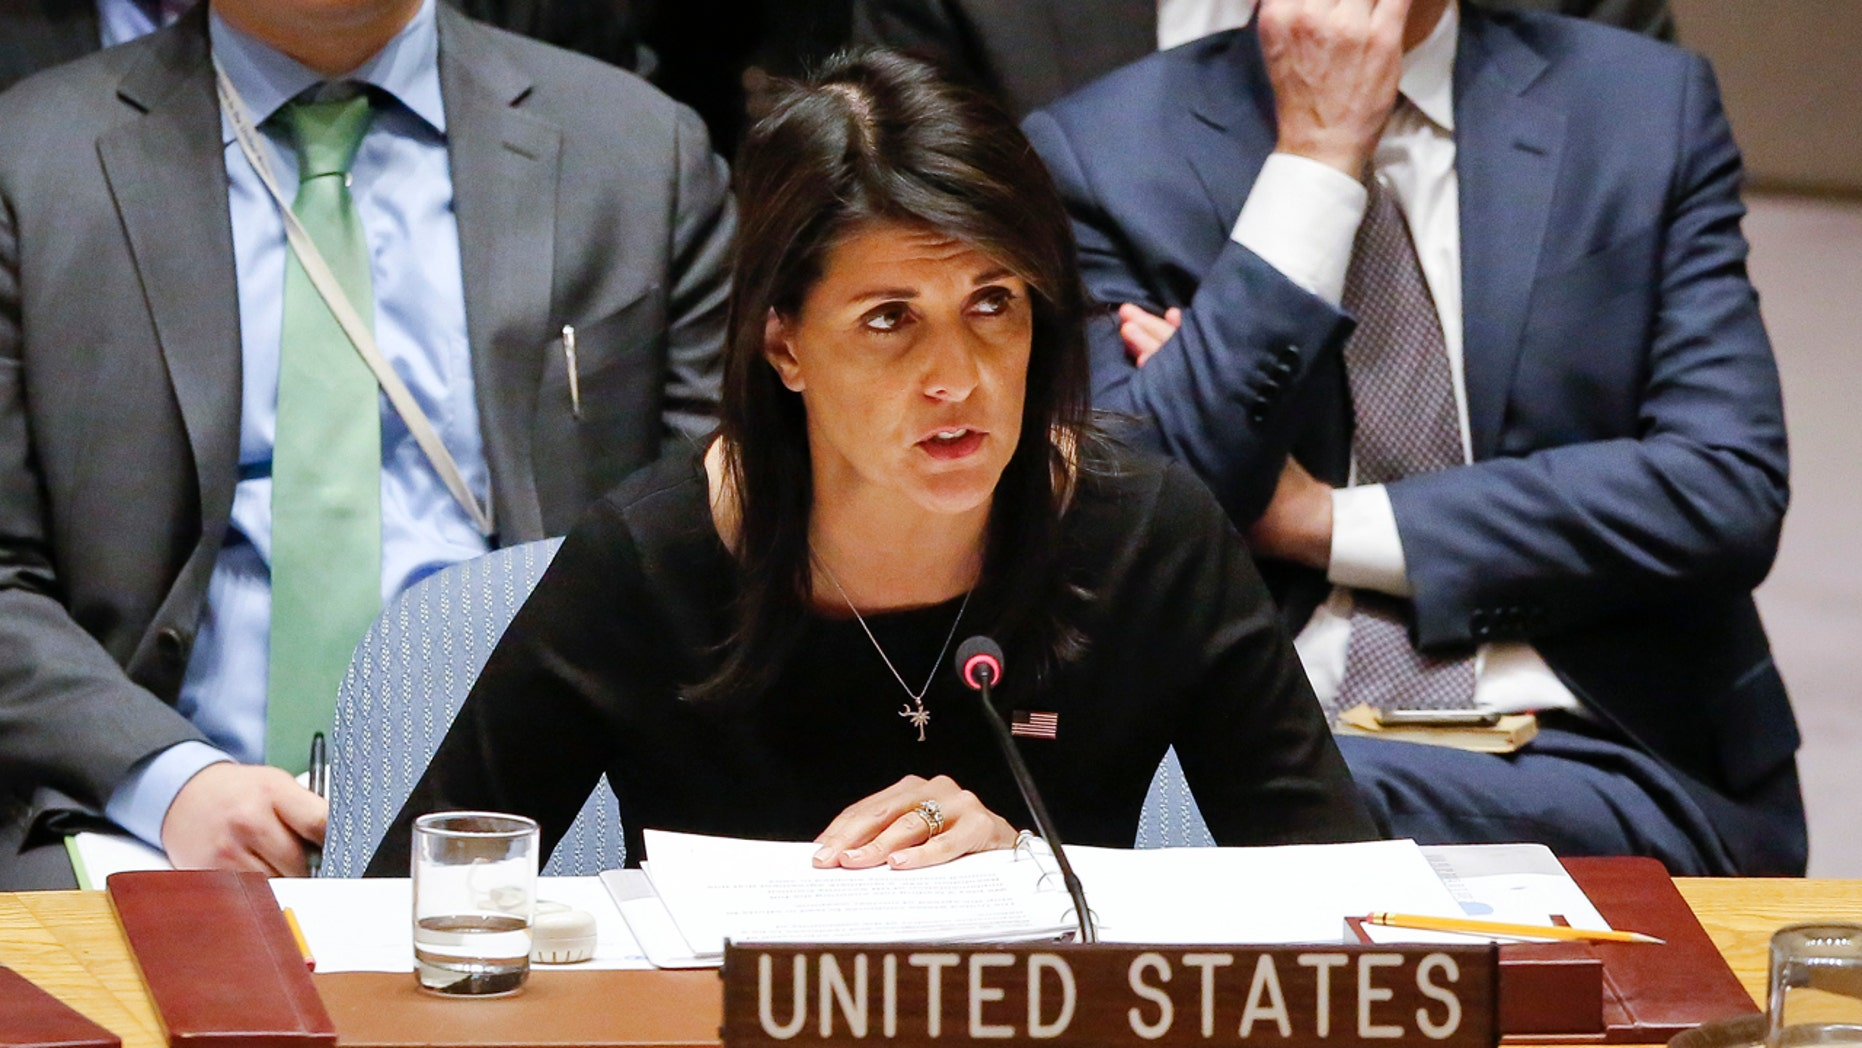 United Nations U.S. Ambassador Nikki Haley address a U.N. Security Council meeting on non-proliferation of weapons of mass destruction, Thursday Jan. 18, 2018 at U.N. headquarters. (AP Photo/Bebeto Matthews)